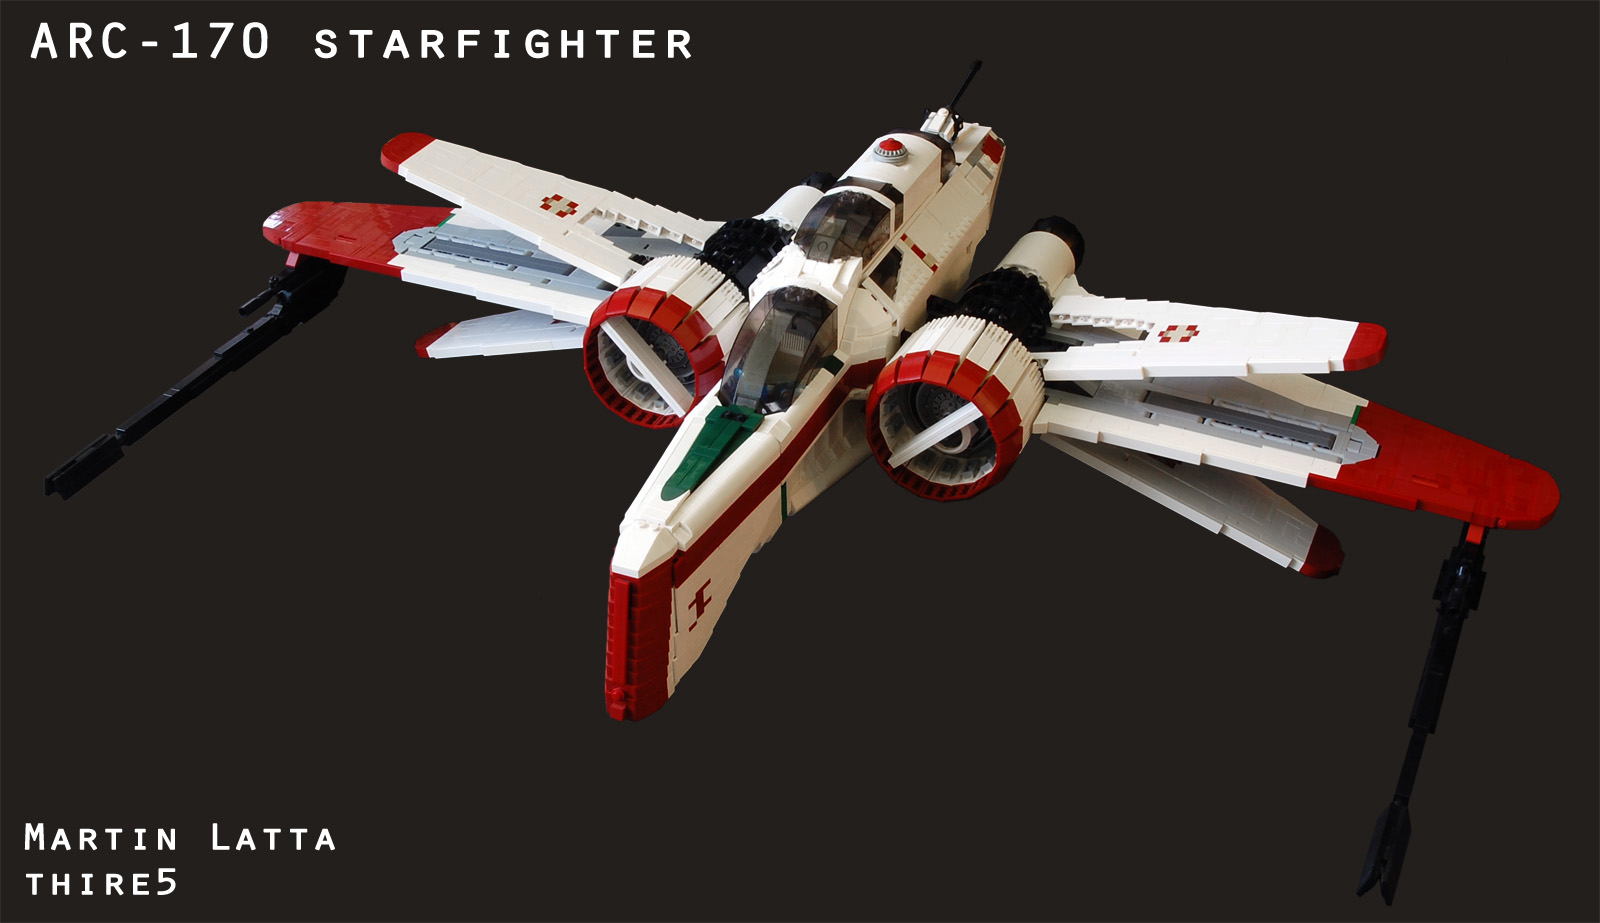 arc-170_starfighter - autor Robbed